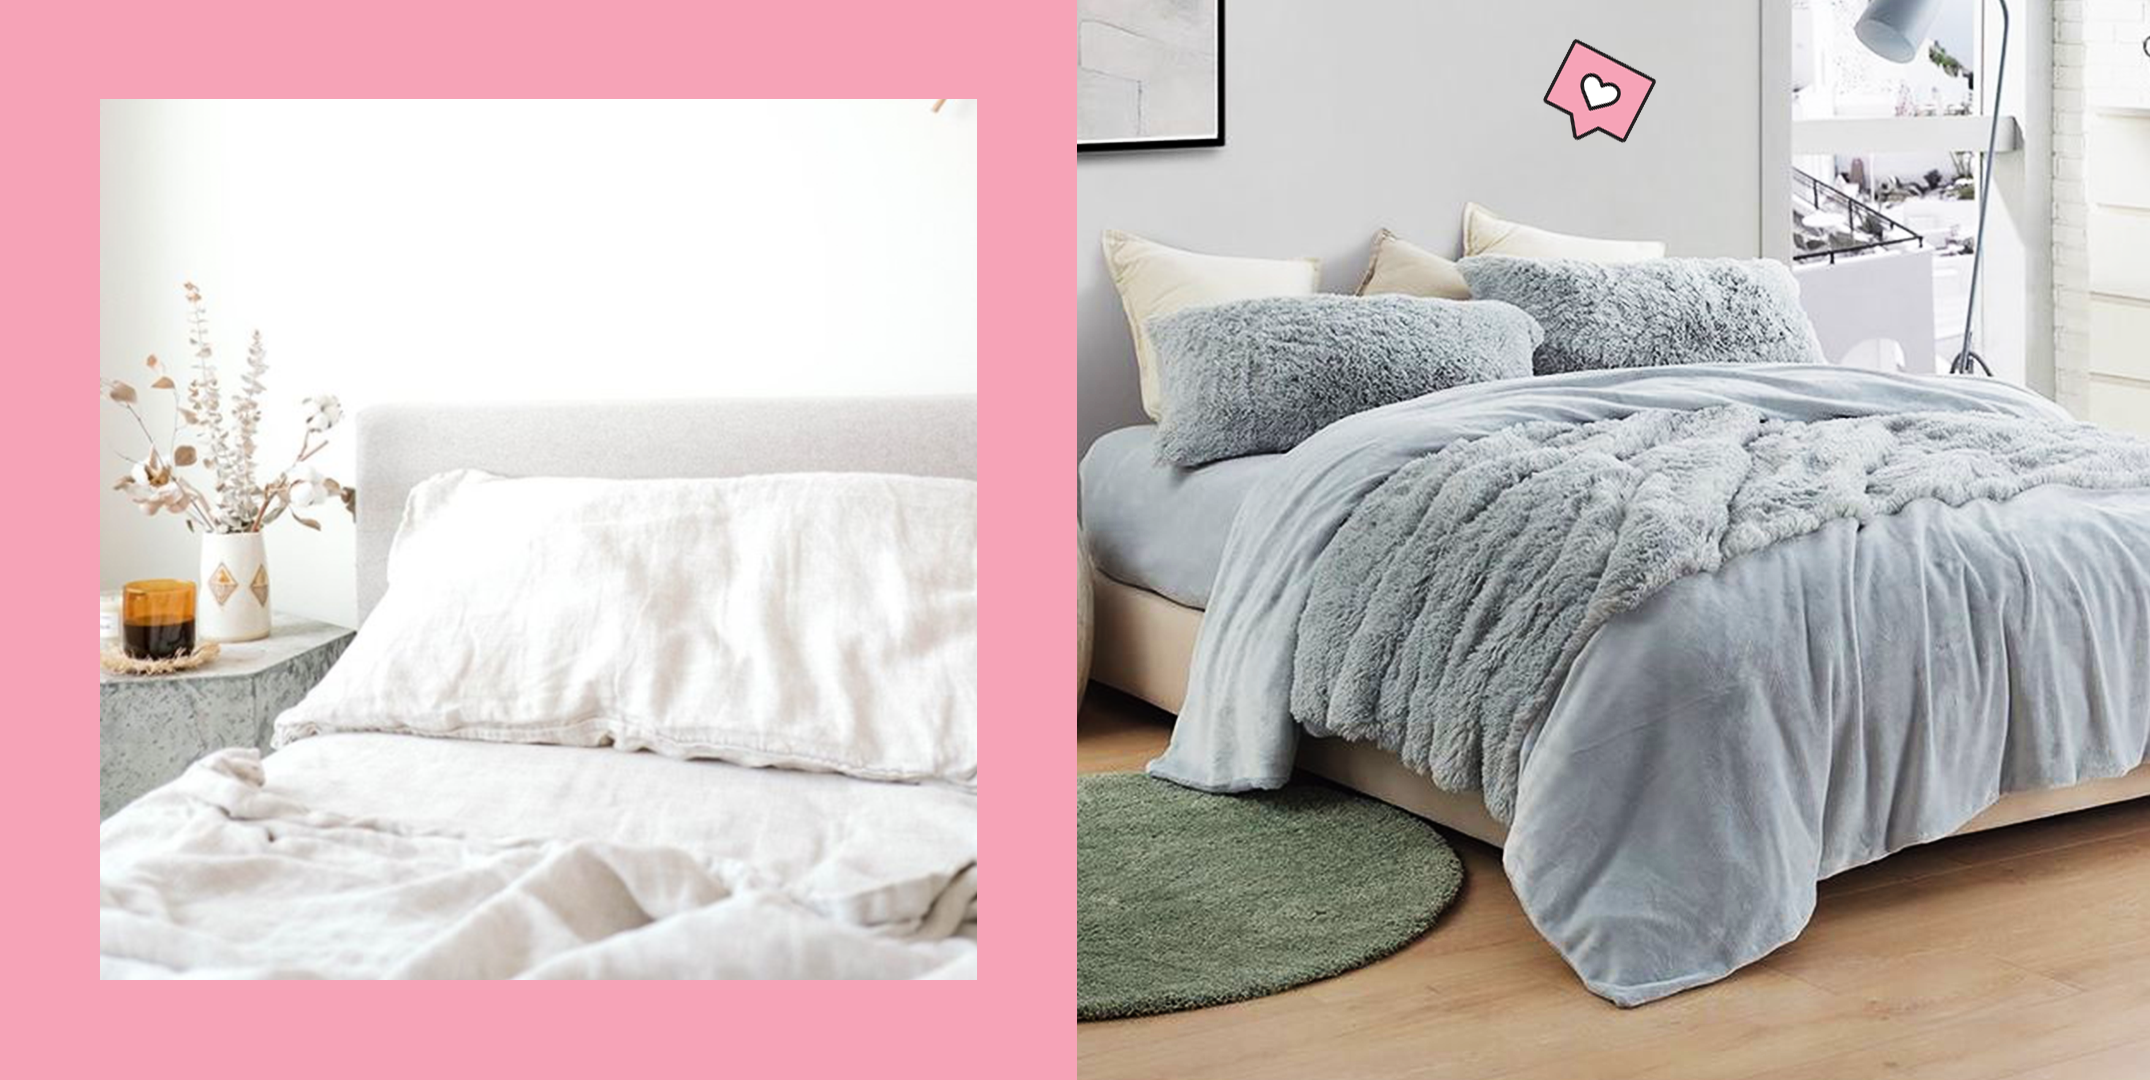 13 Warm Winter Sheets Cozy Bedding Sets For Cold Weather